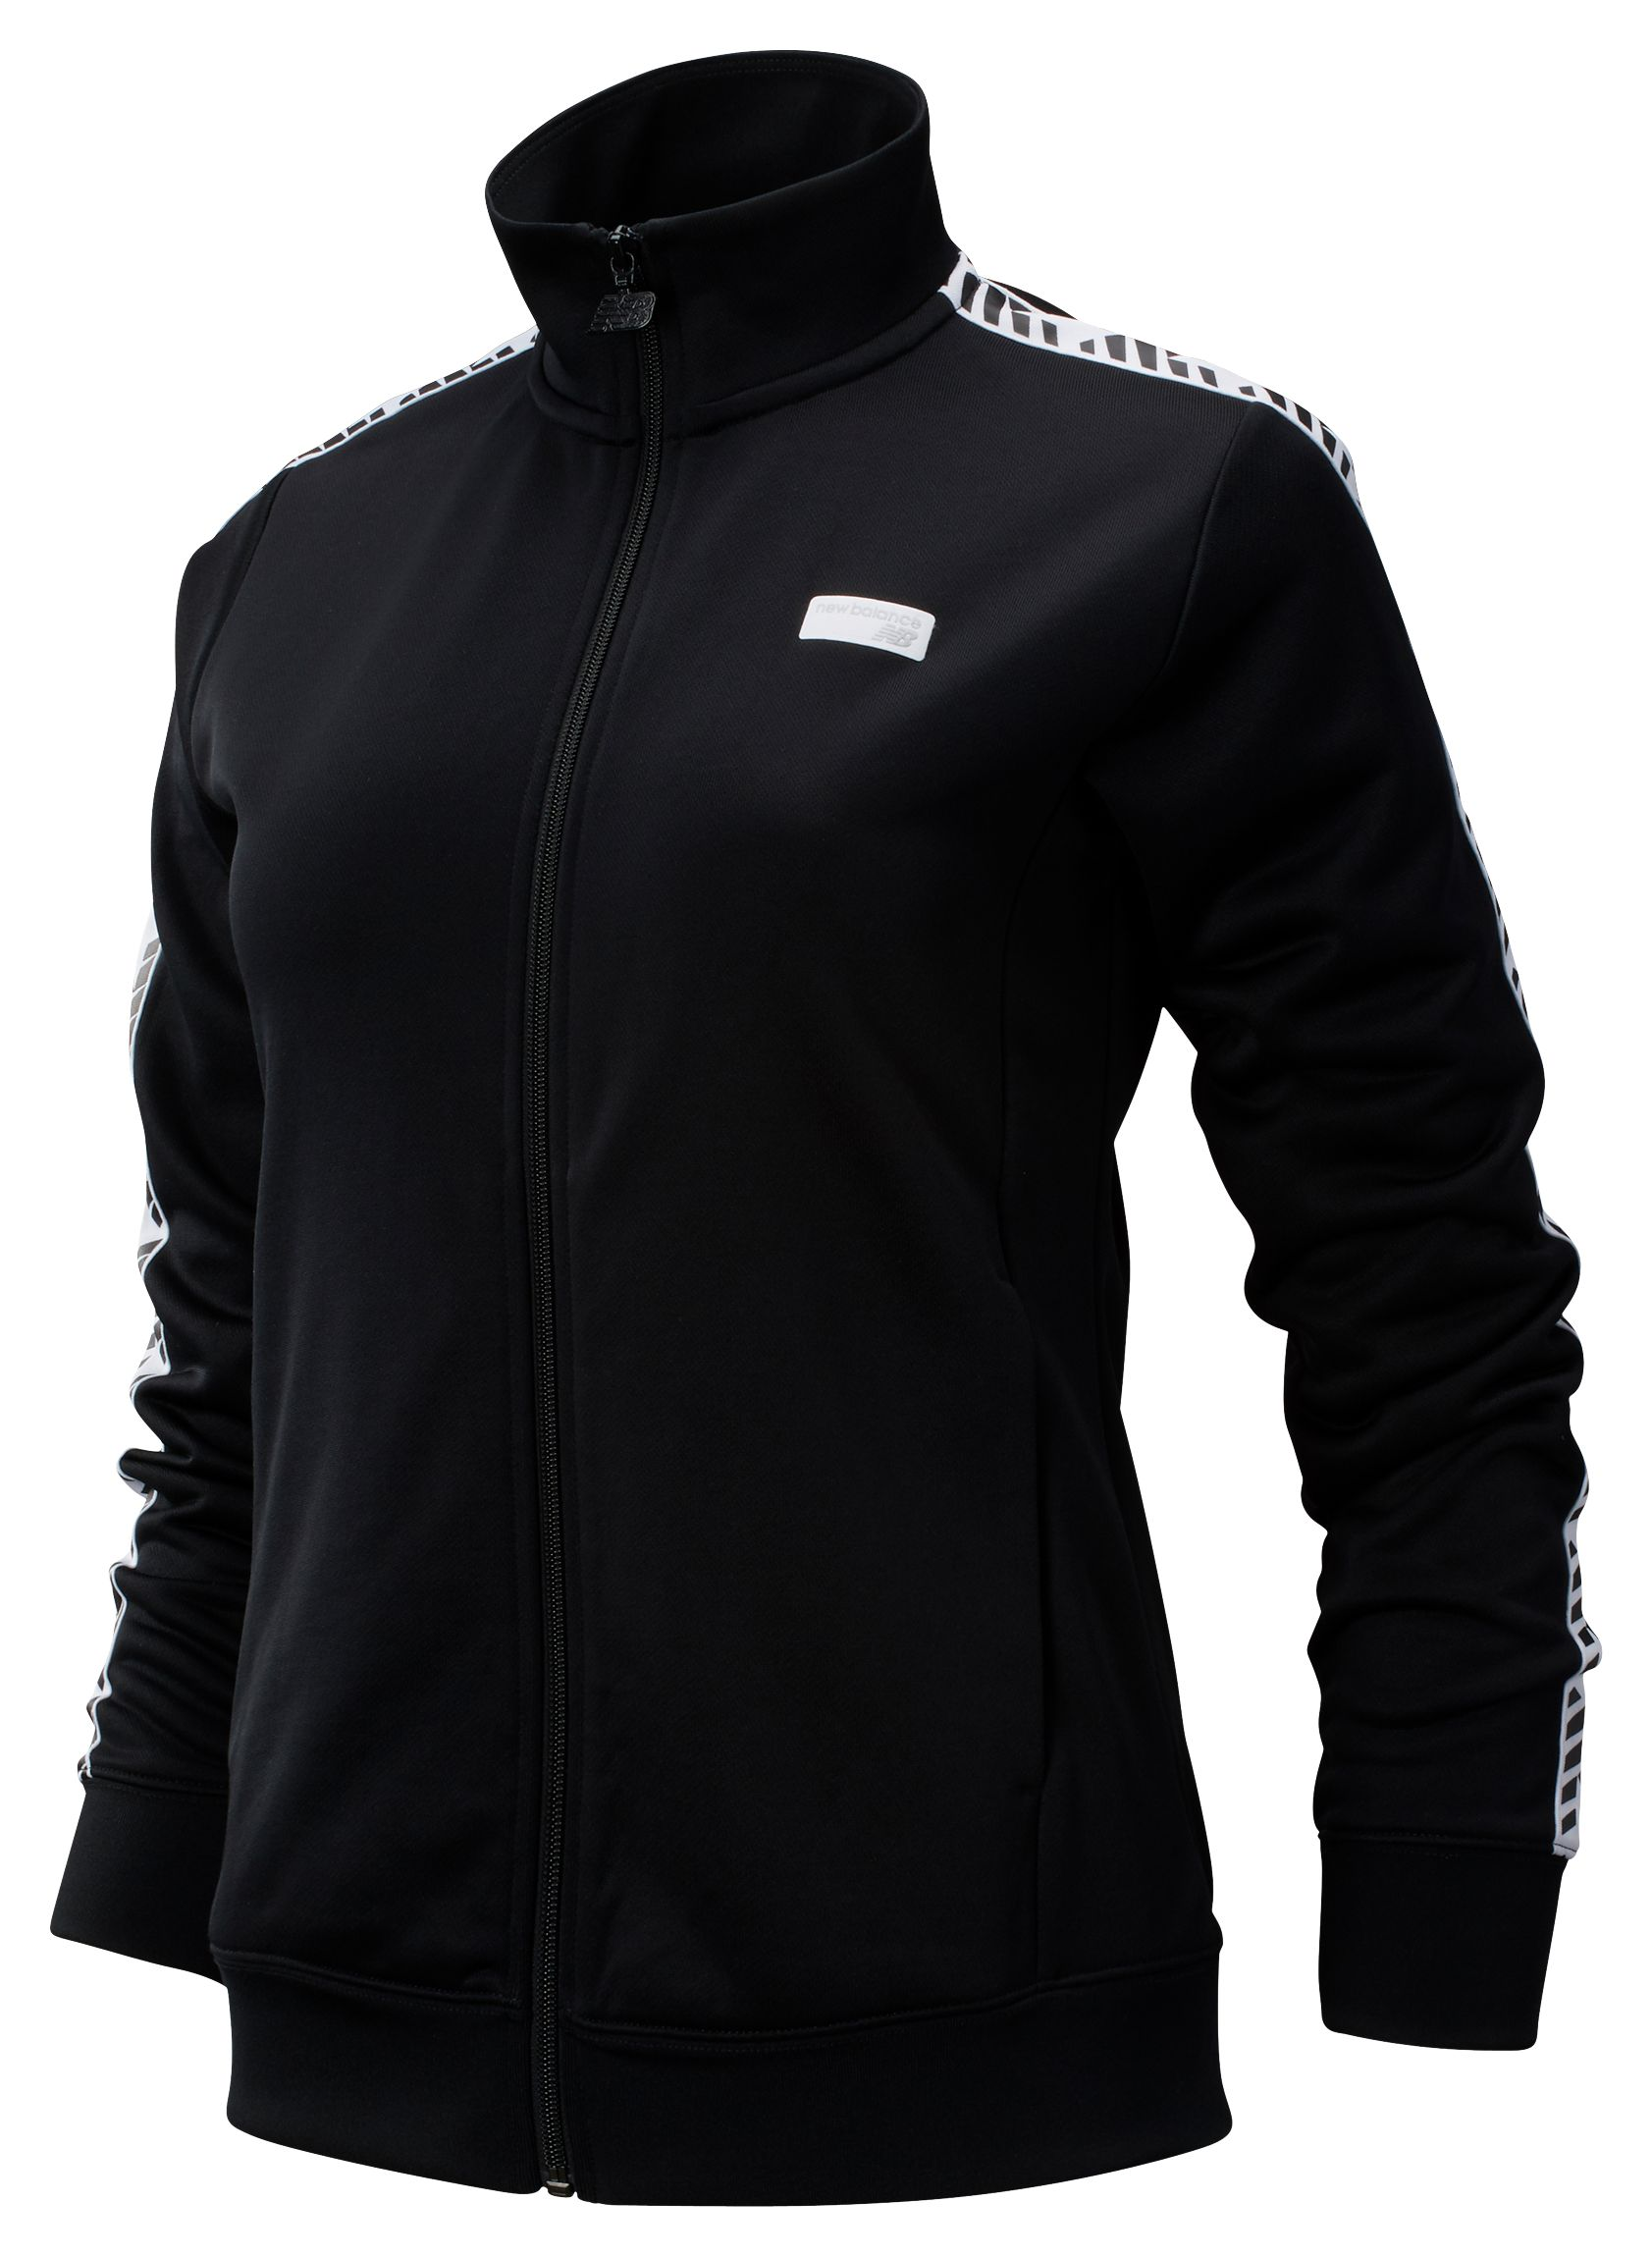 Women's NB Athletics Classic Track Jacket